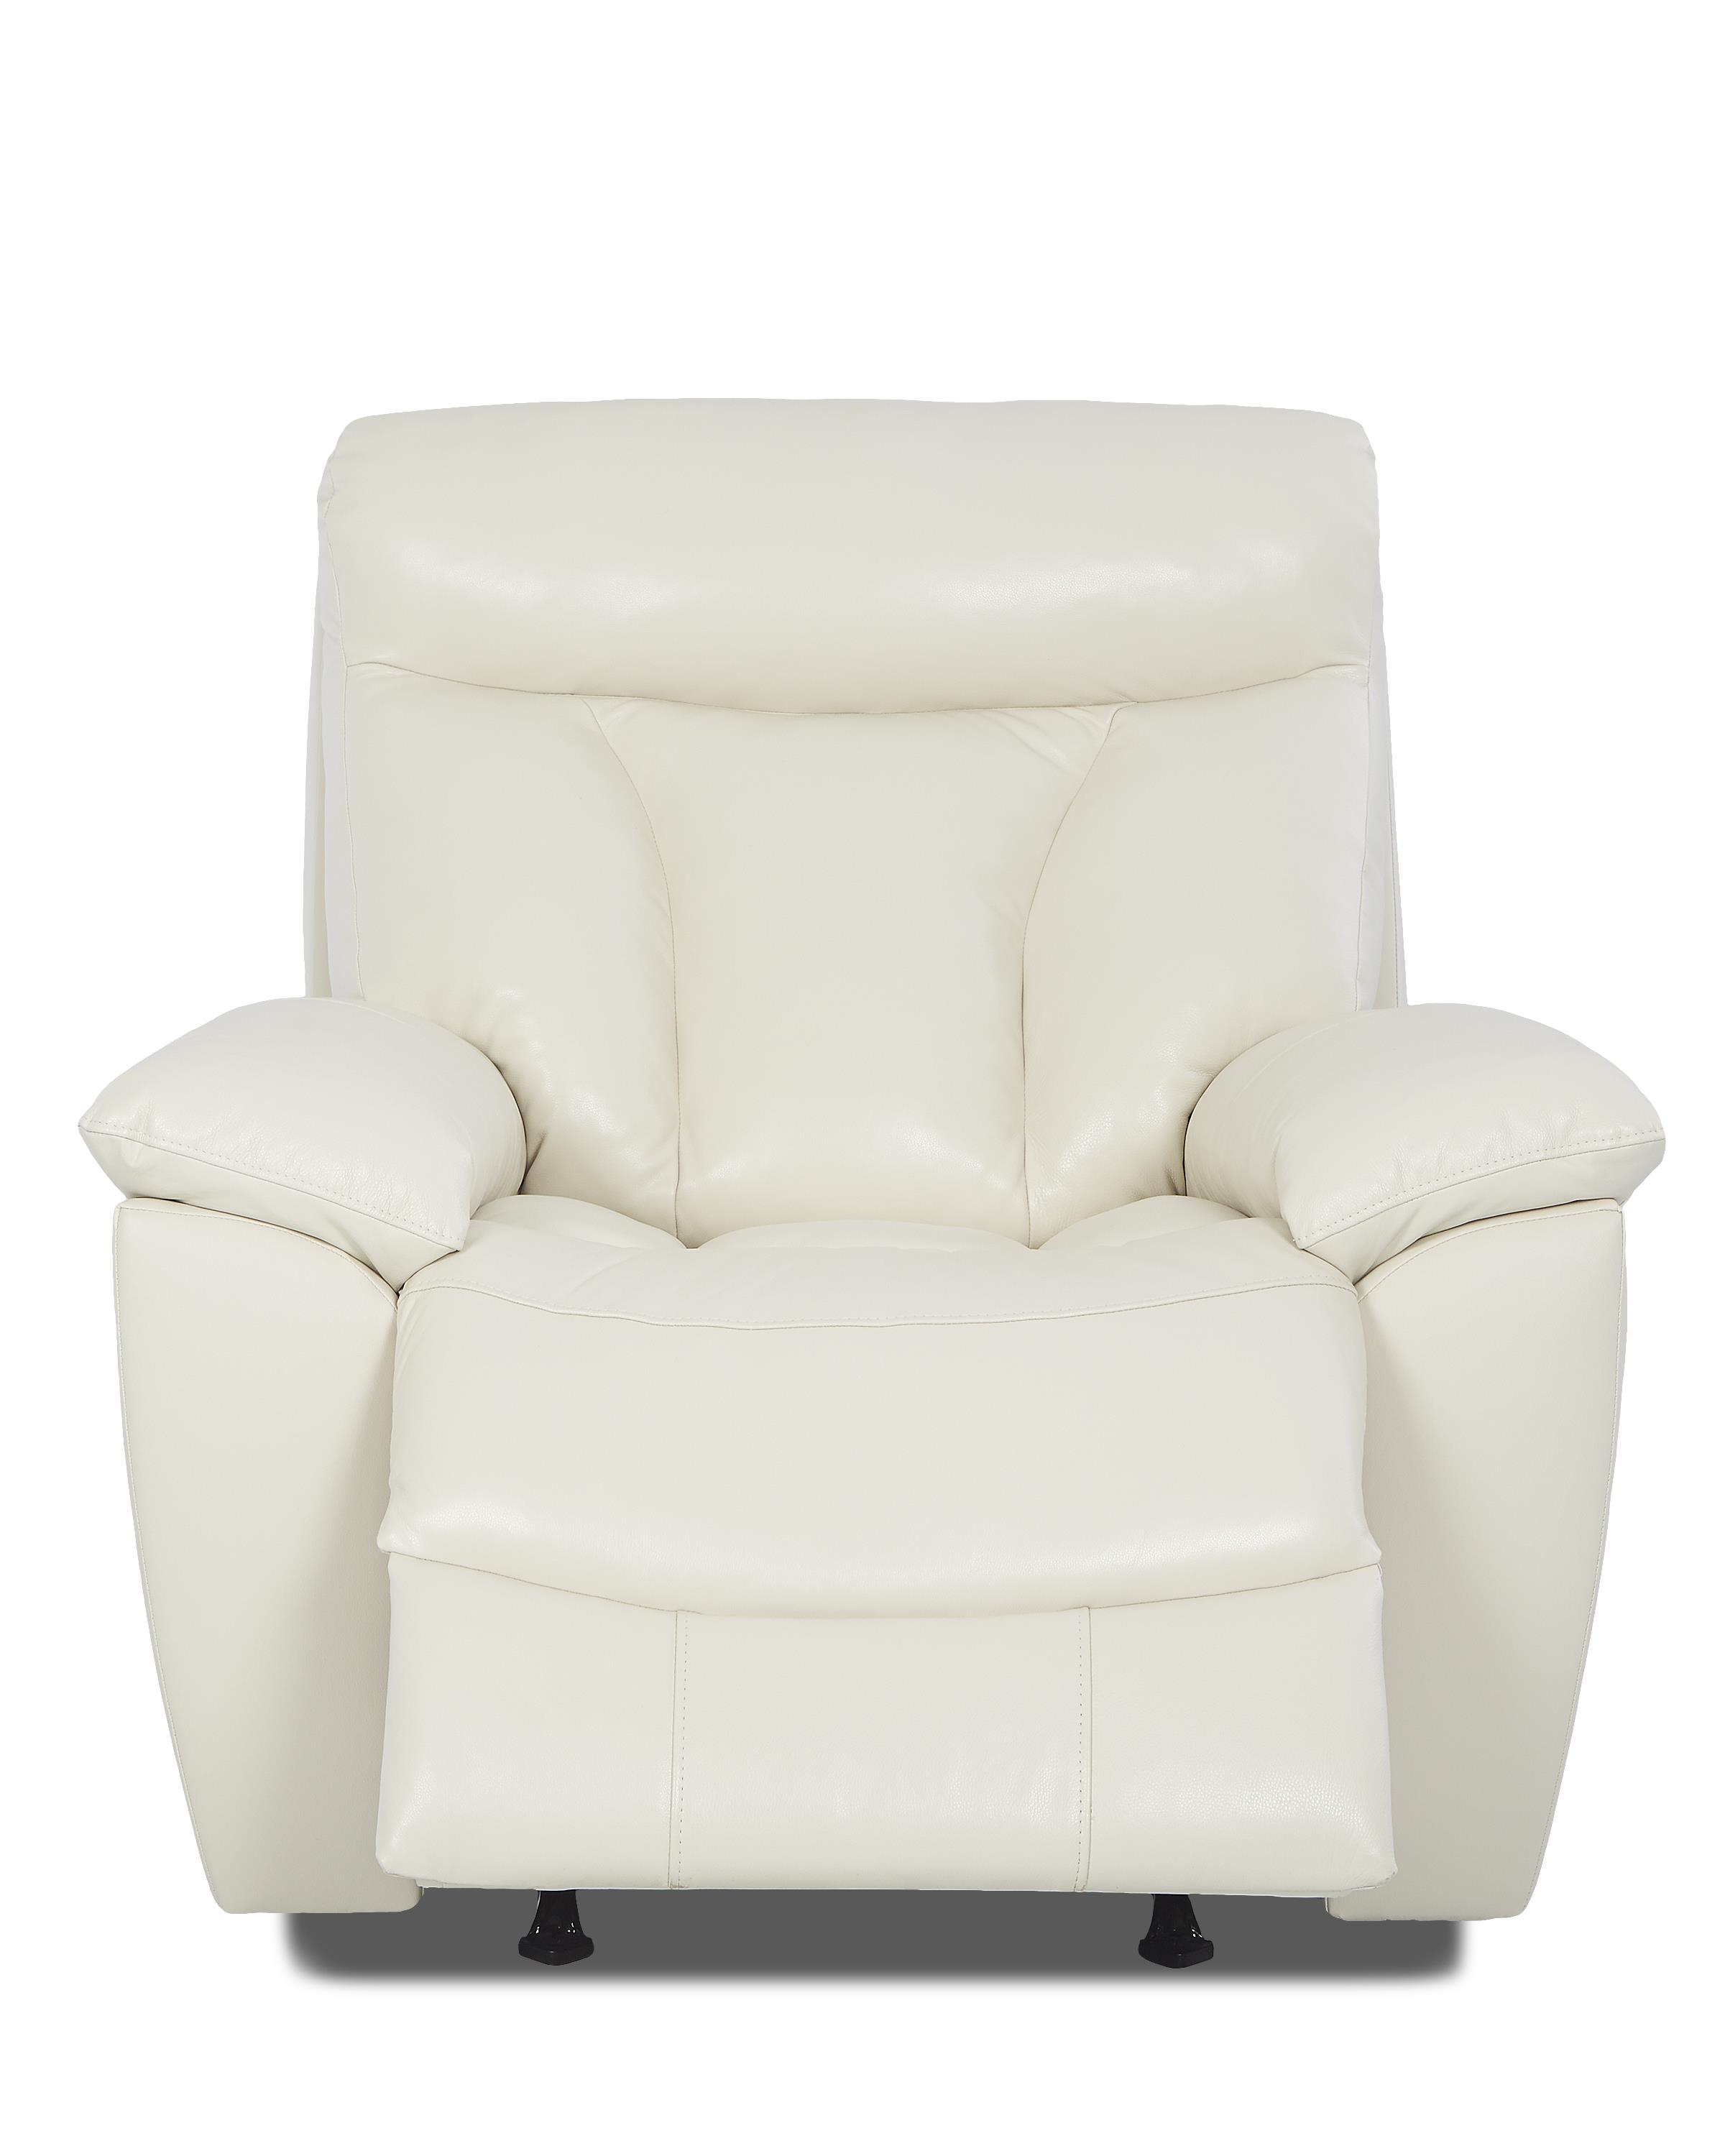 swivel chair operations sleeper twin klaussner deluxe lv63703h sgrc gliding recliner with